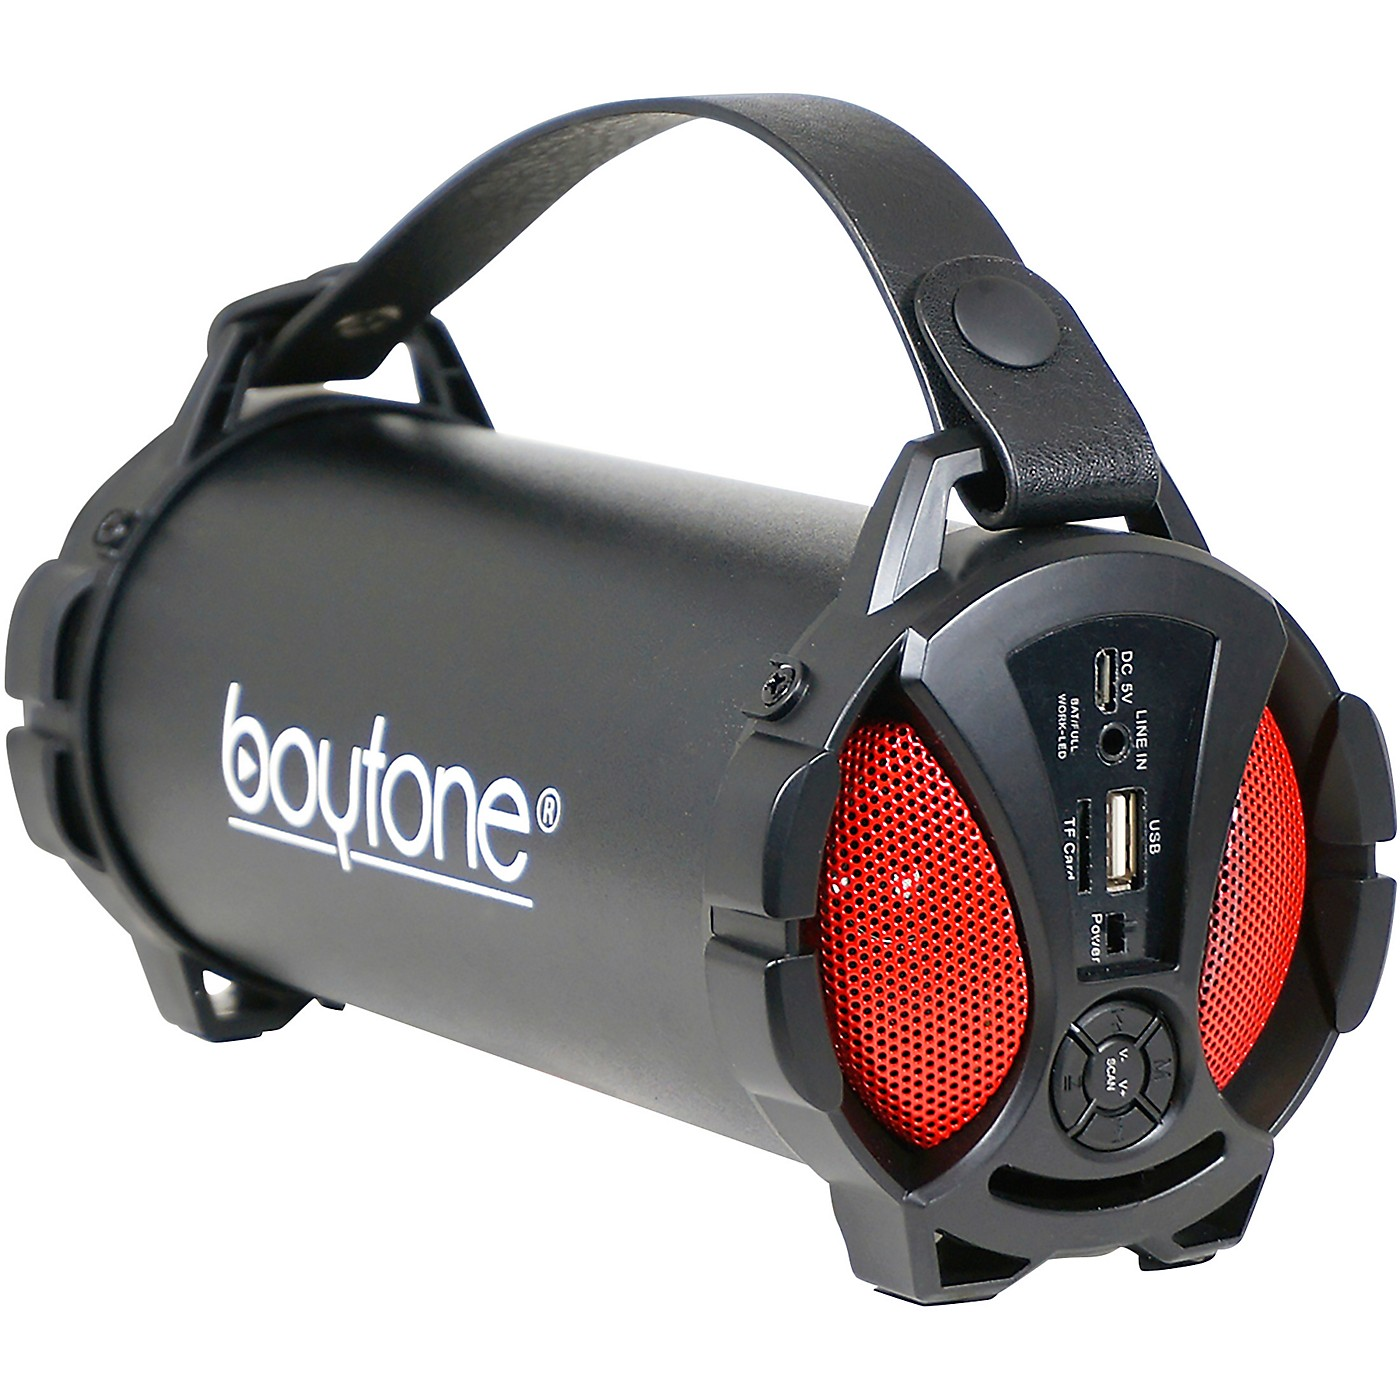 Boytone BT-38 Portable Bluetooth Hi-Fi Cylinder Speaker thumbnail